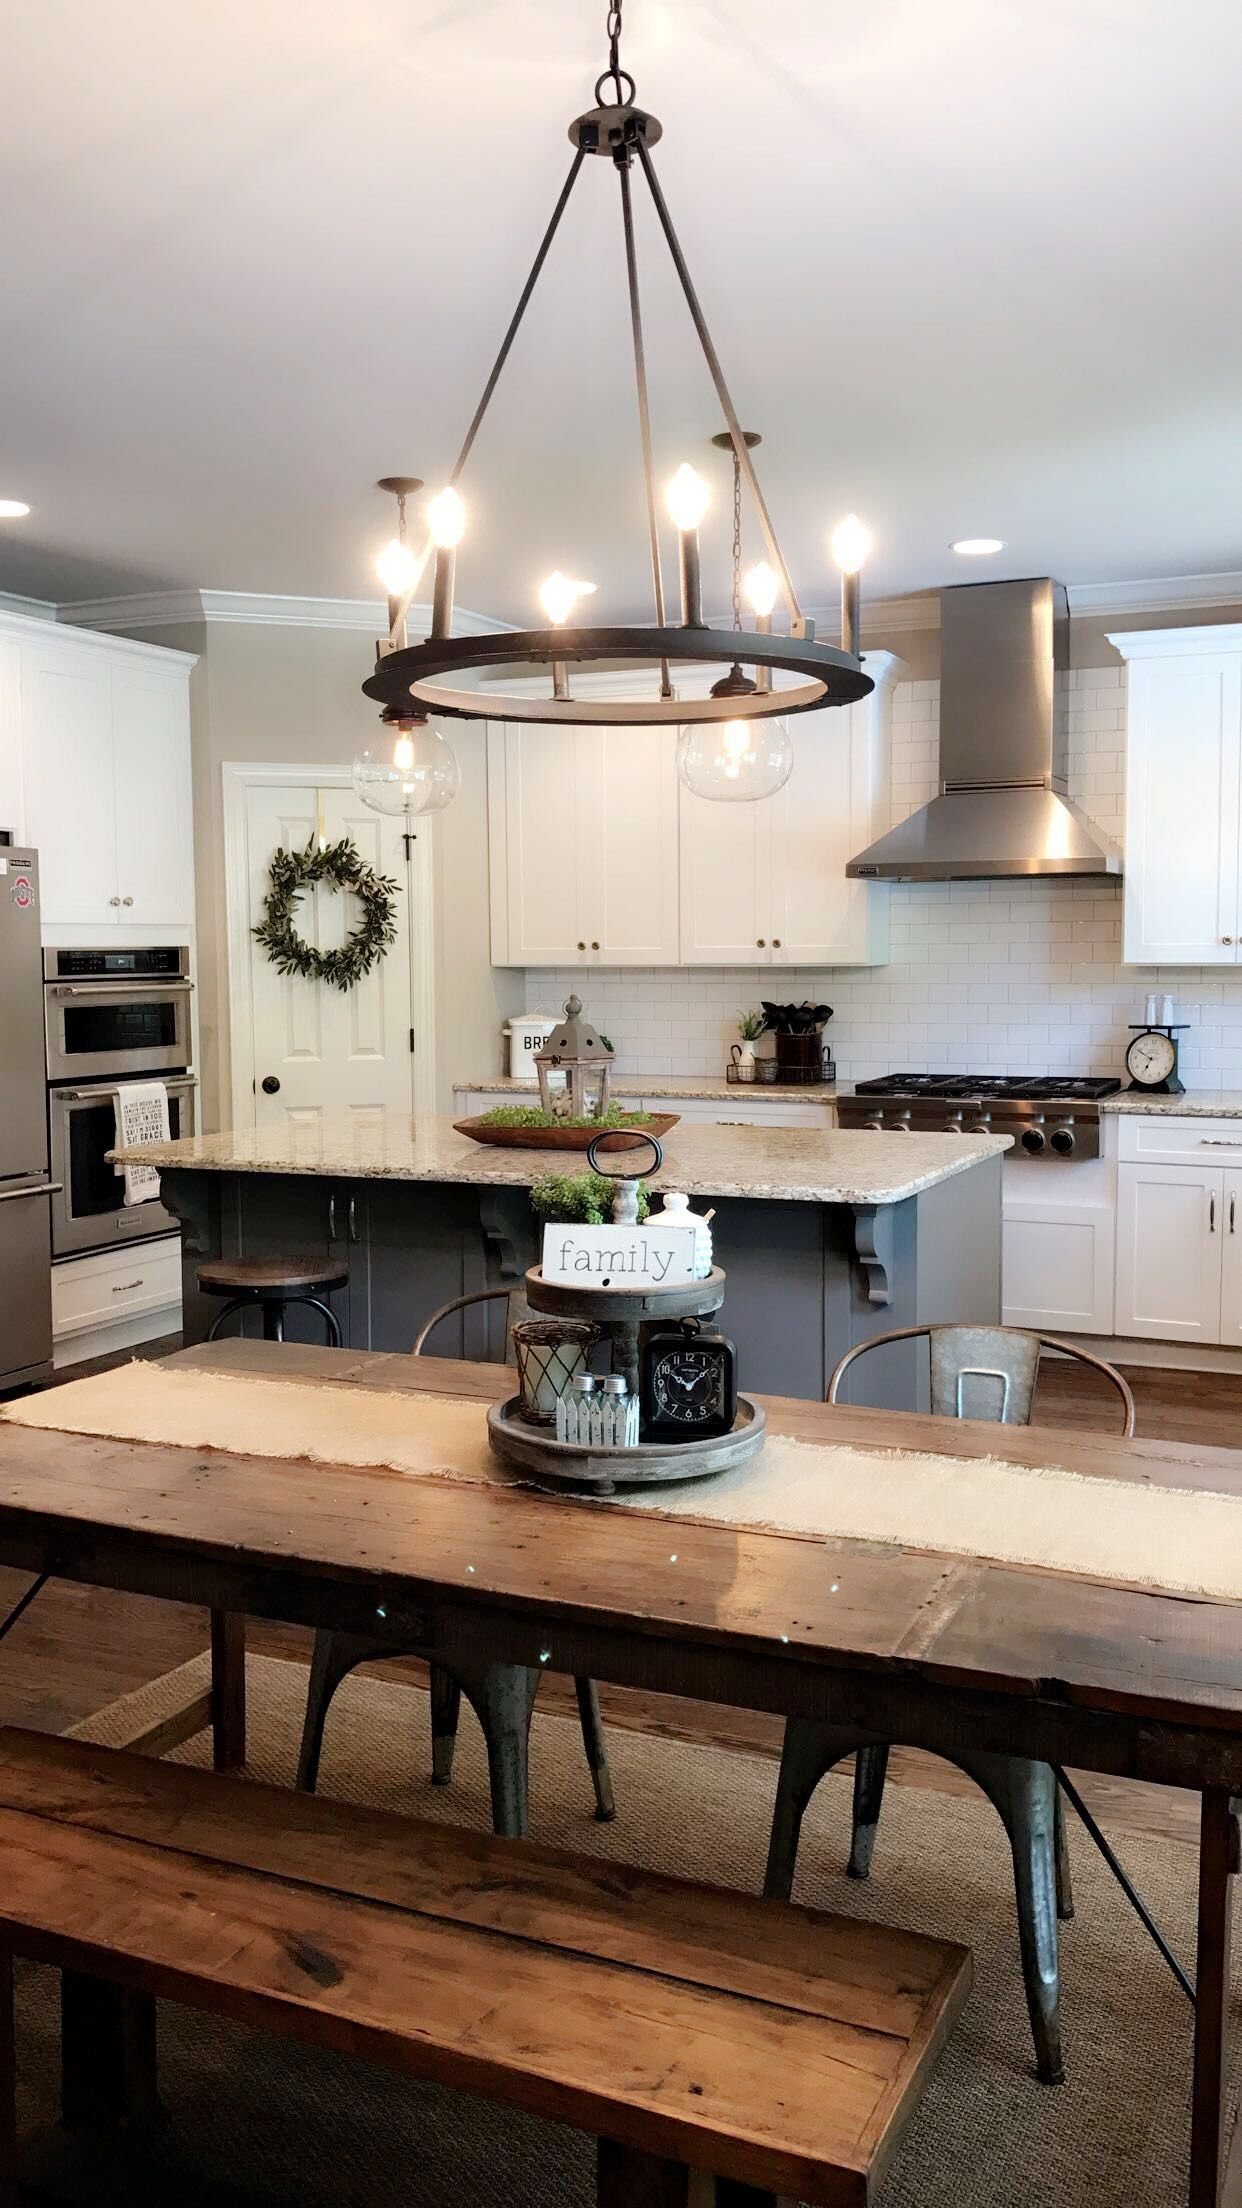 Love The Can Lights In Kitchen Chandelier Over Table  Subway Tile On Stove Wall  Kitchen